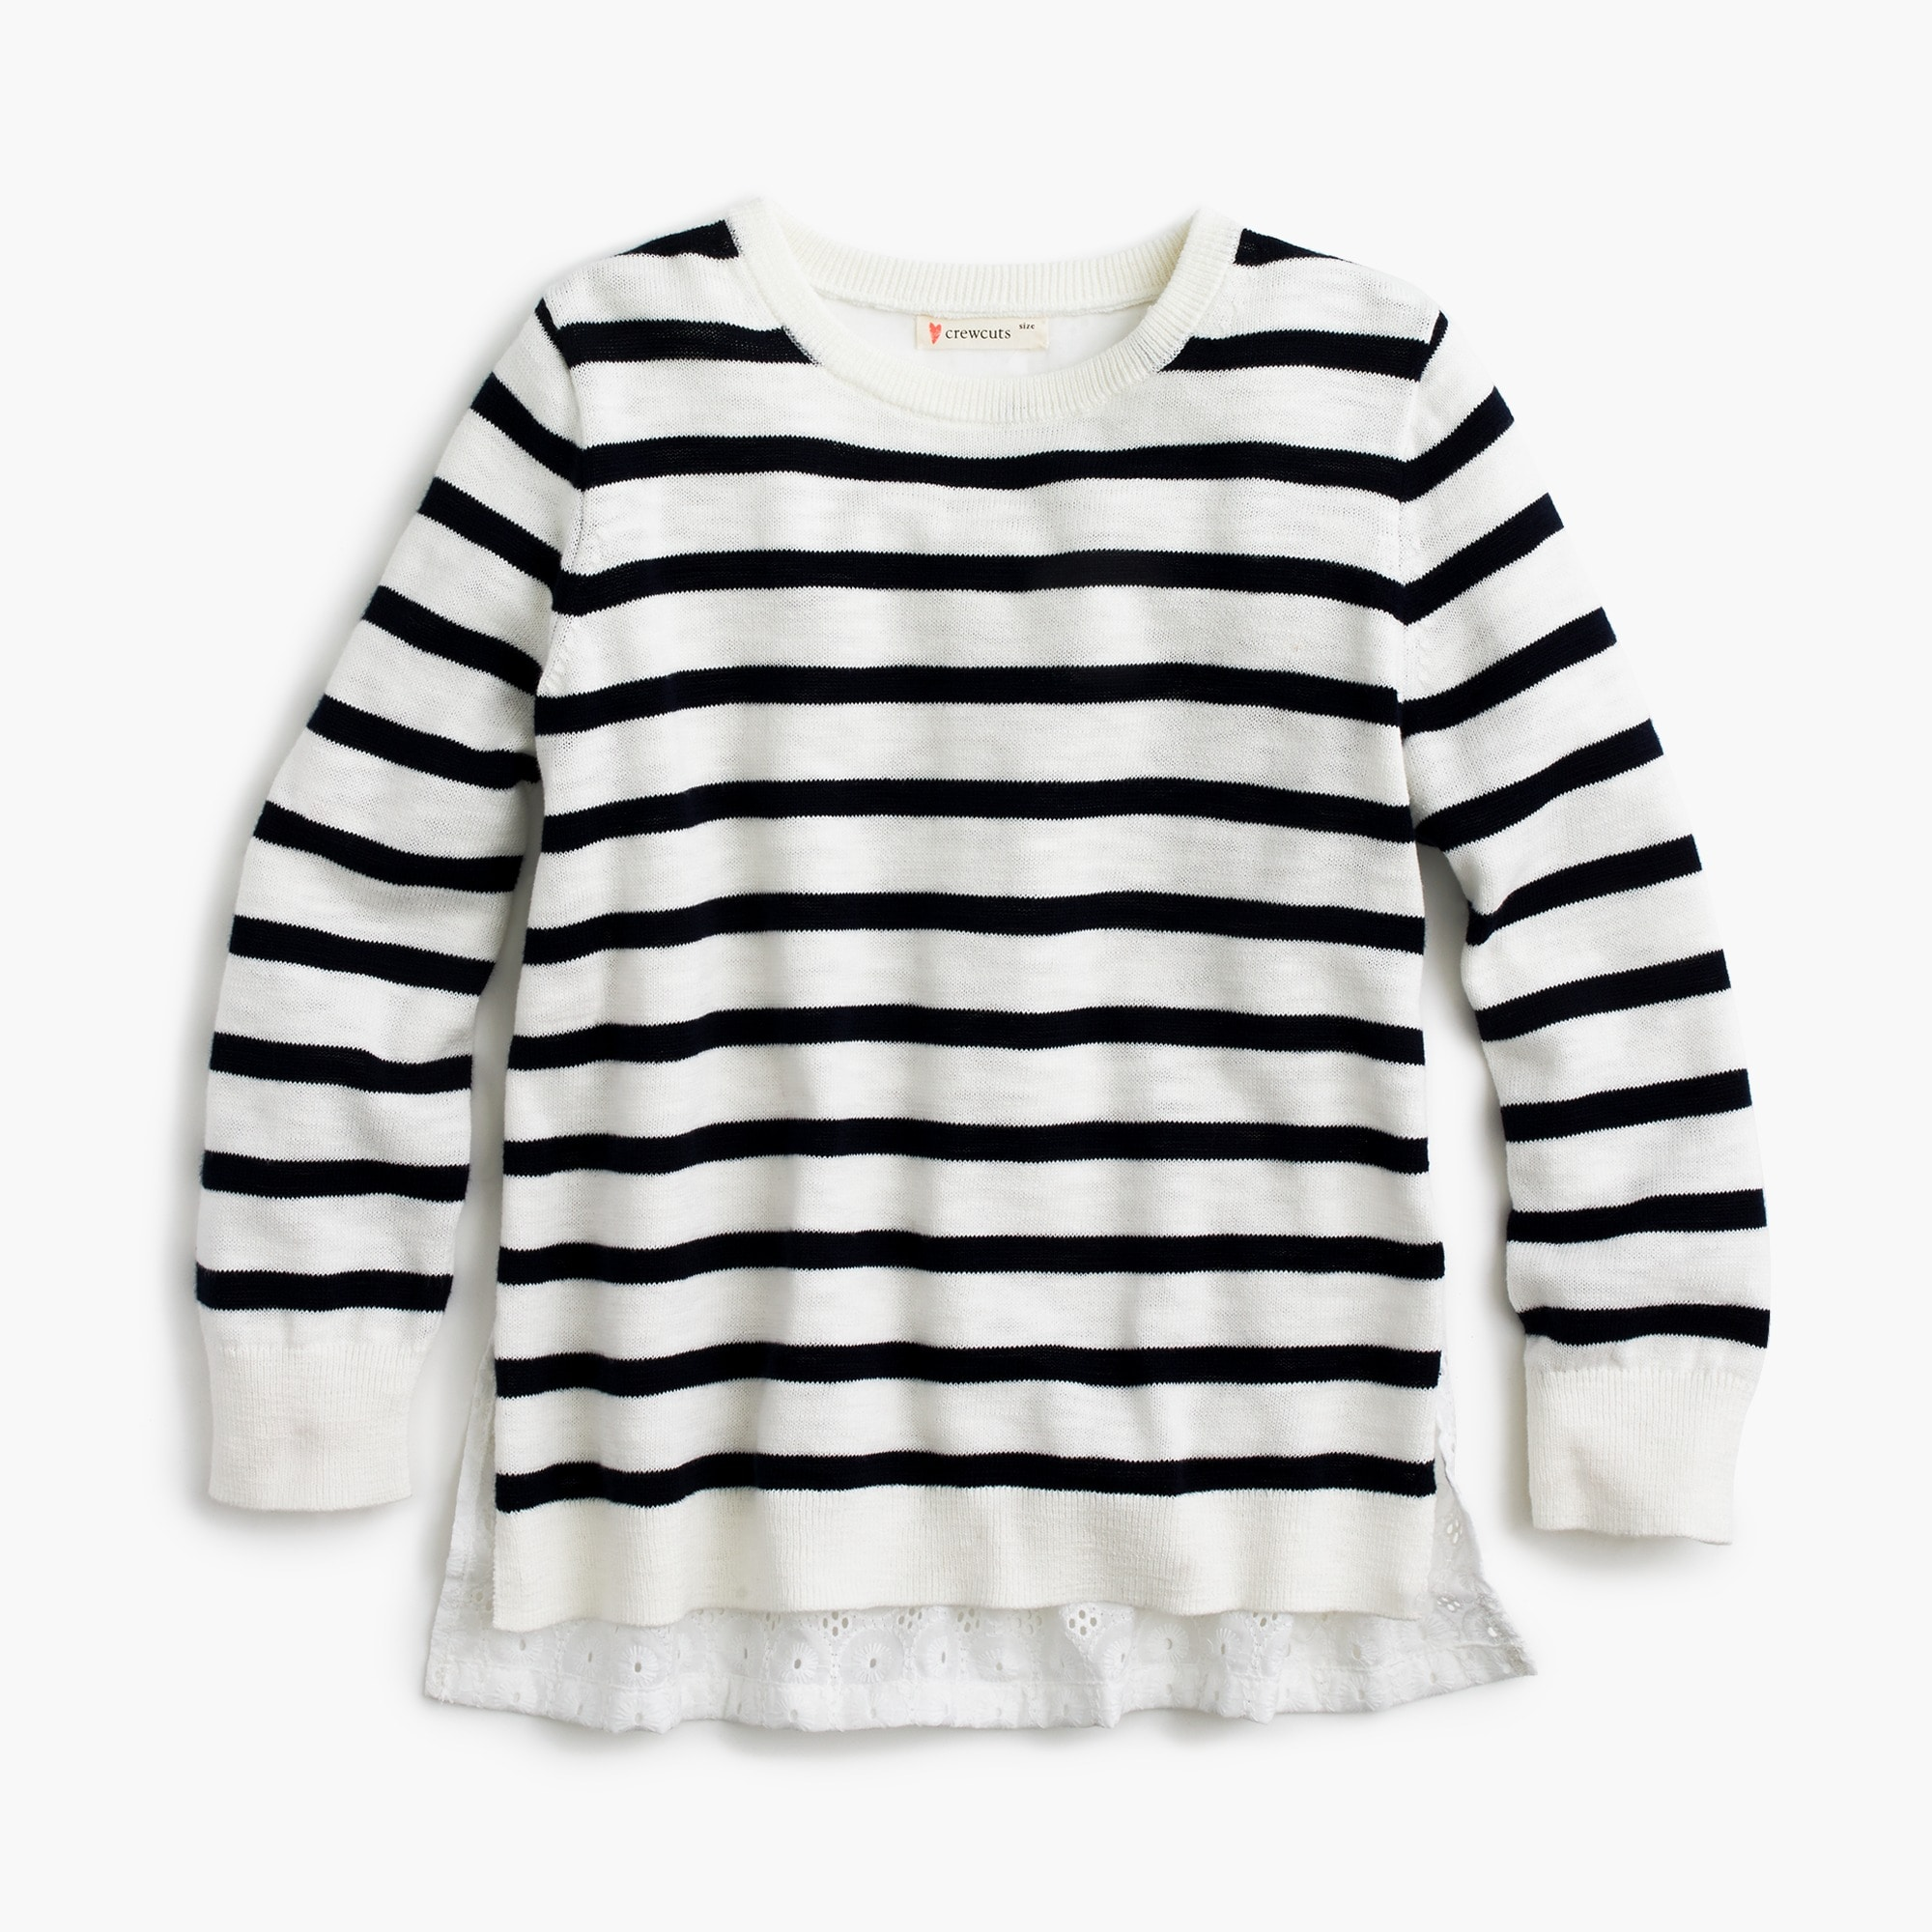 Image 1 for Girls' eyelet-back striped sweater